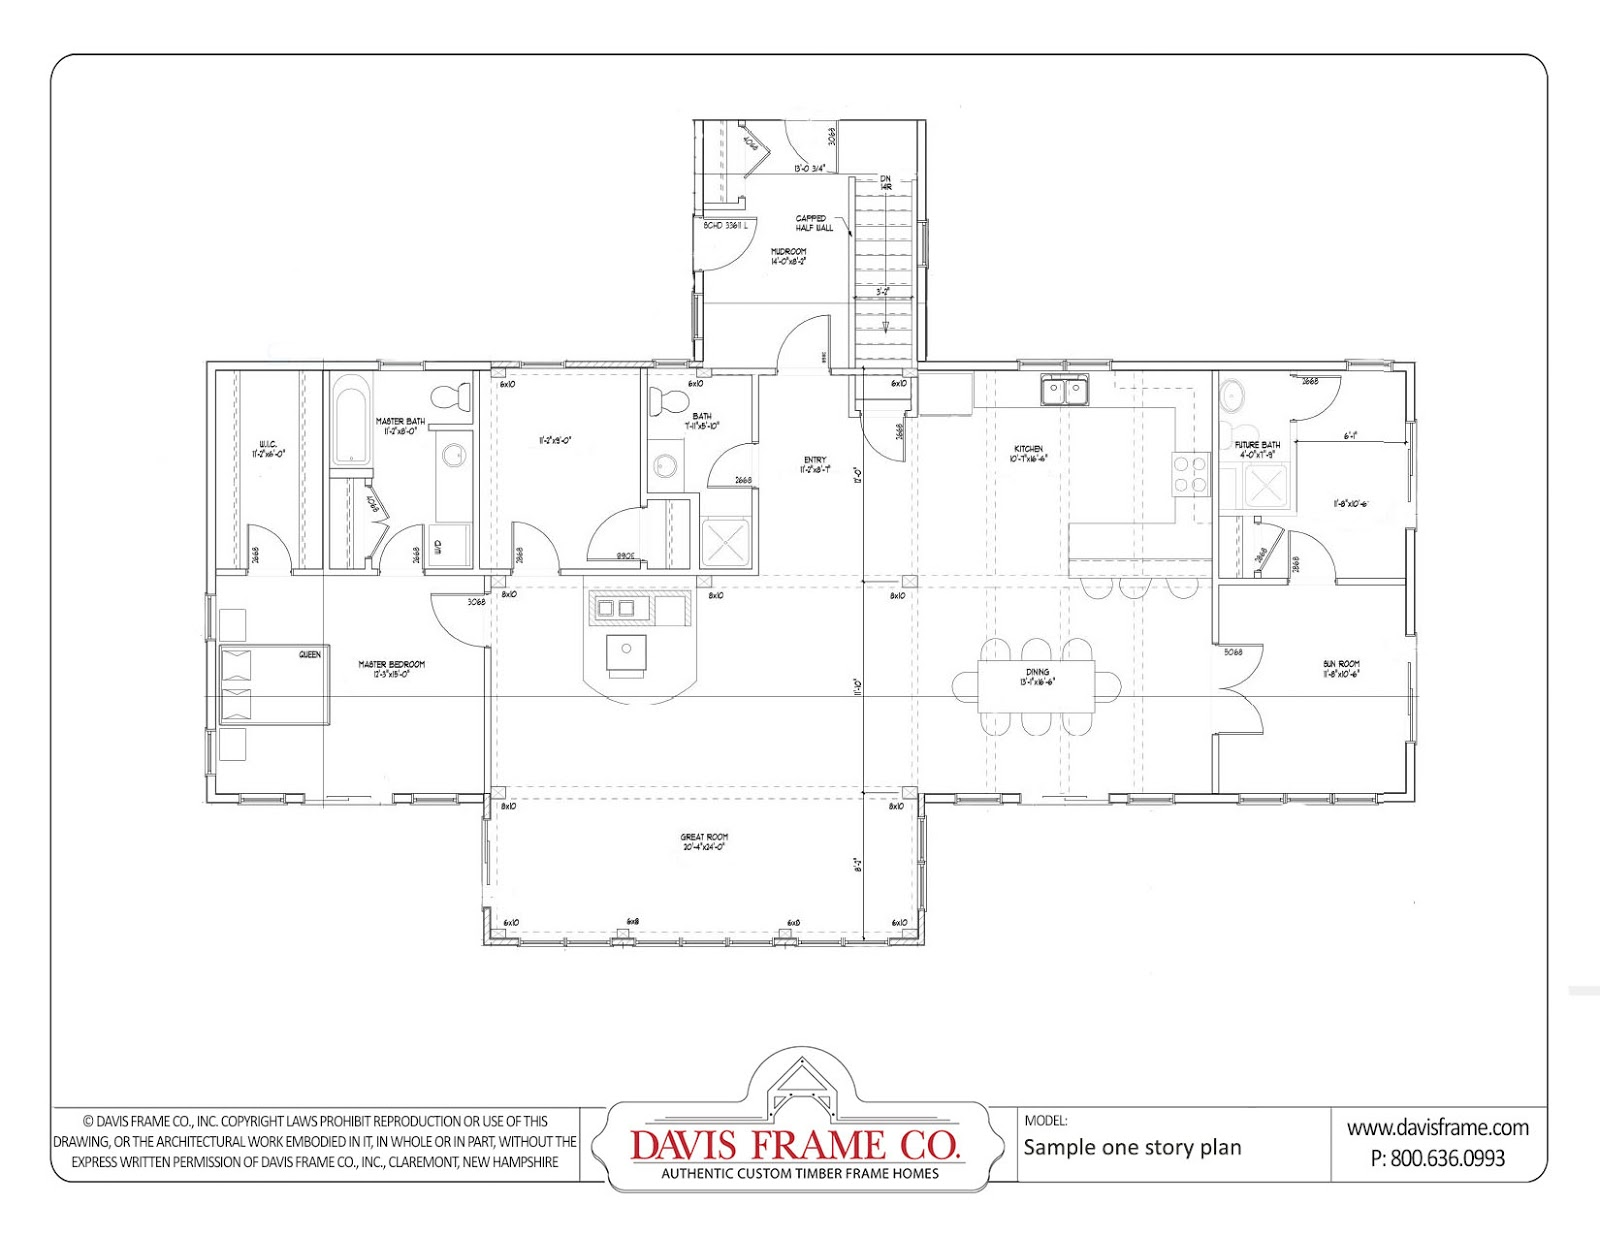 2 story timber frame house floor plans timber frame for Ranch timber frame plans